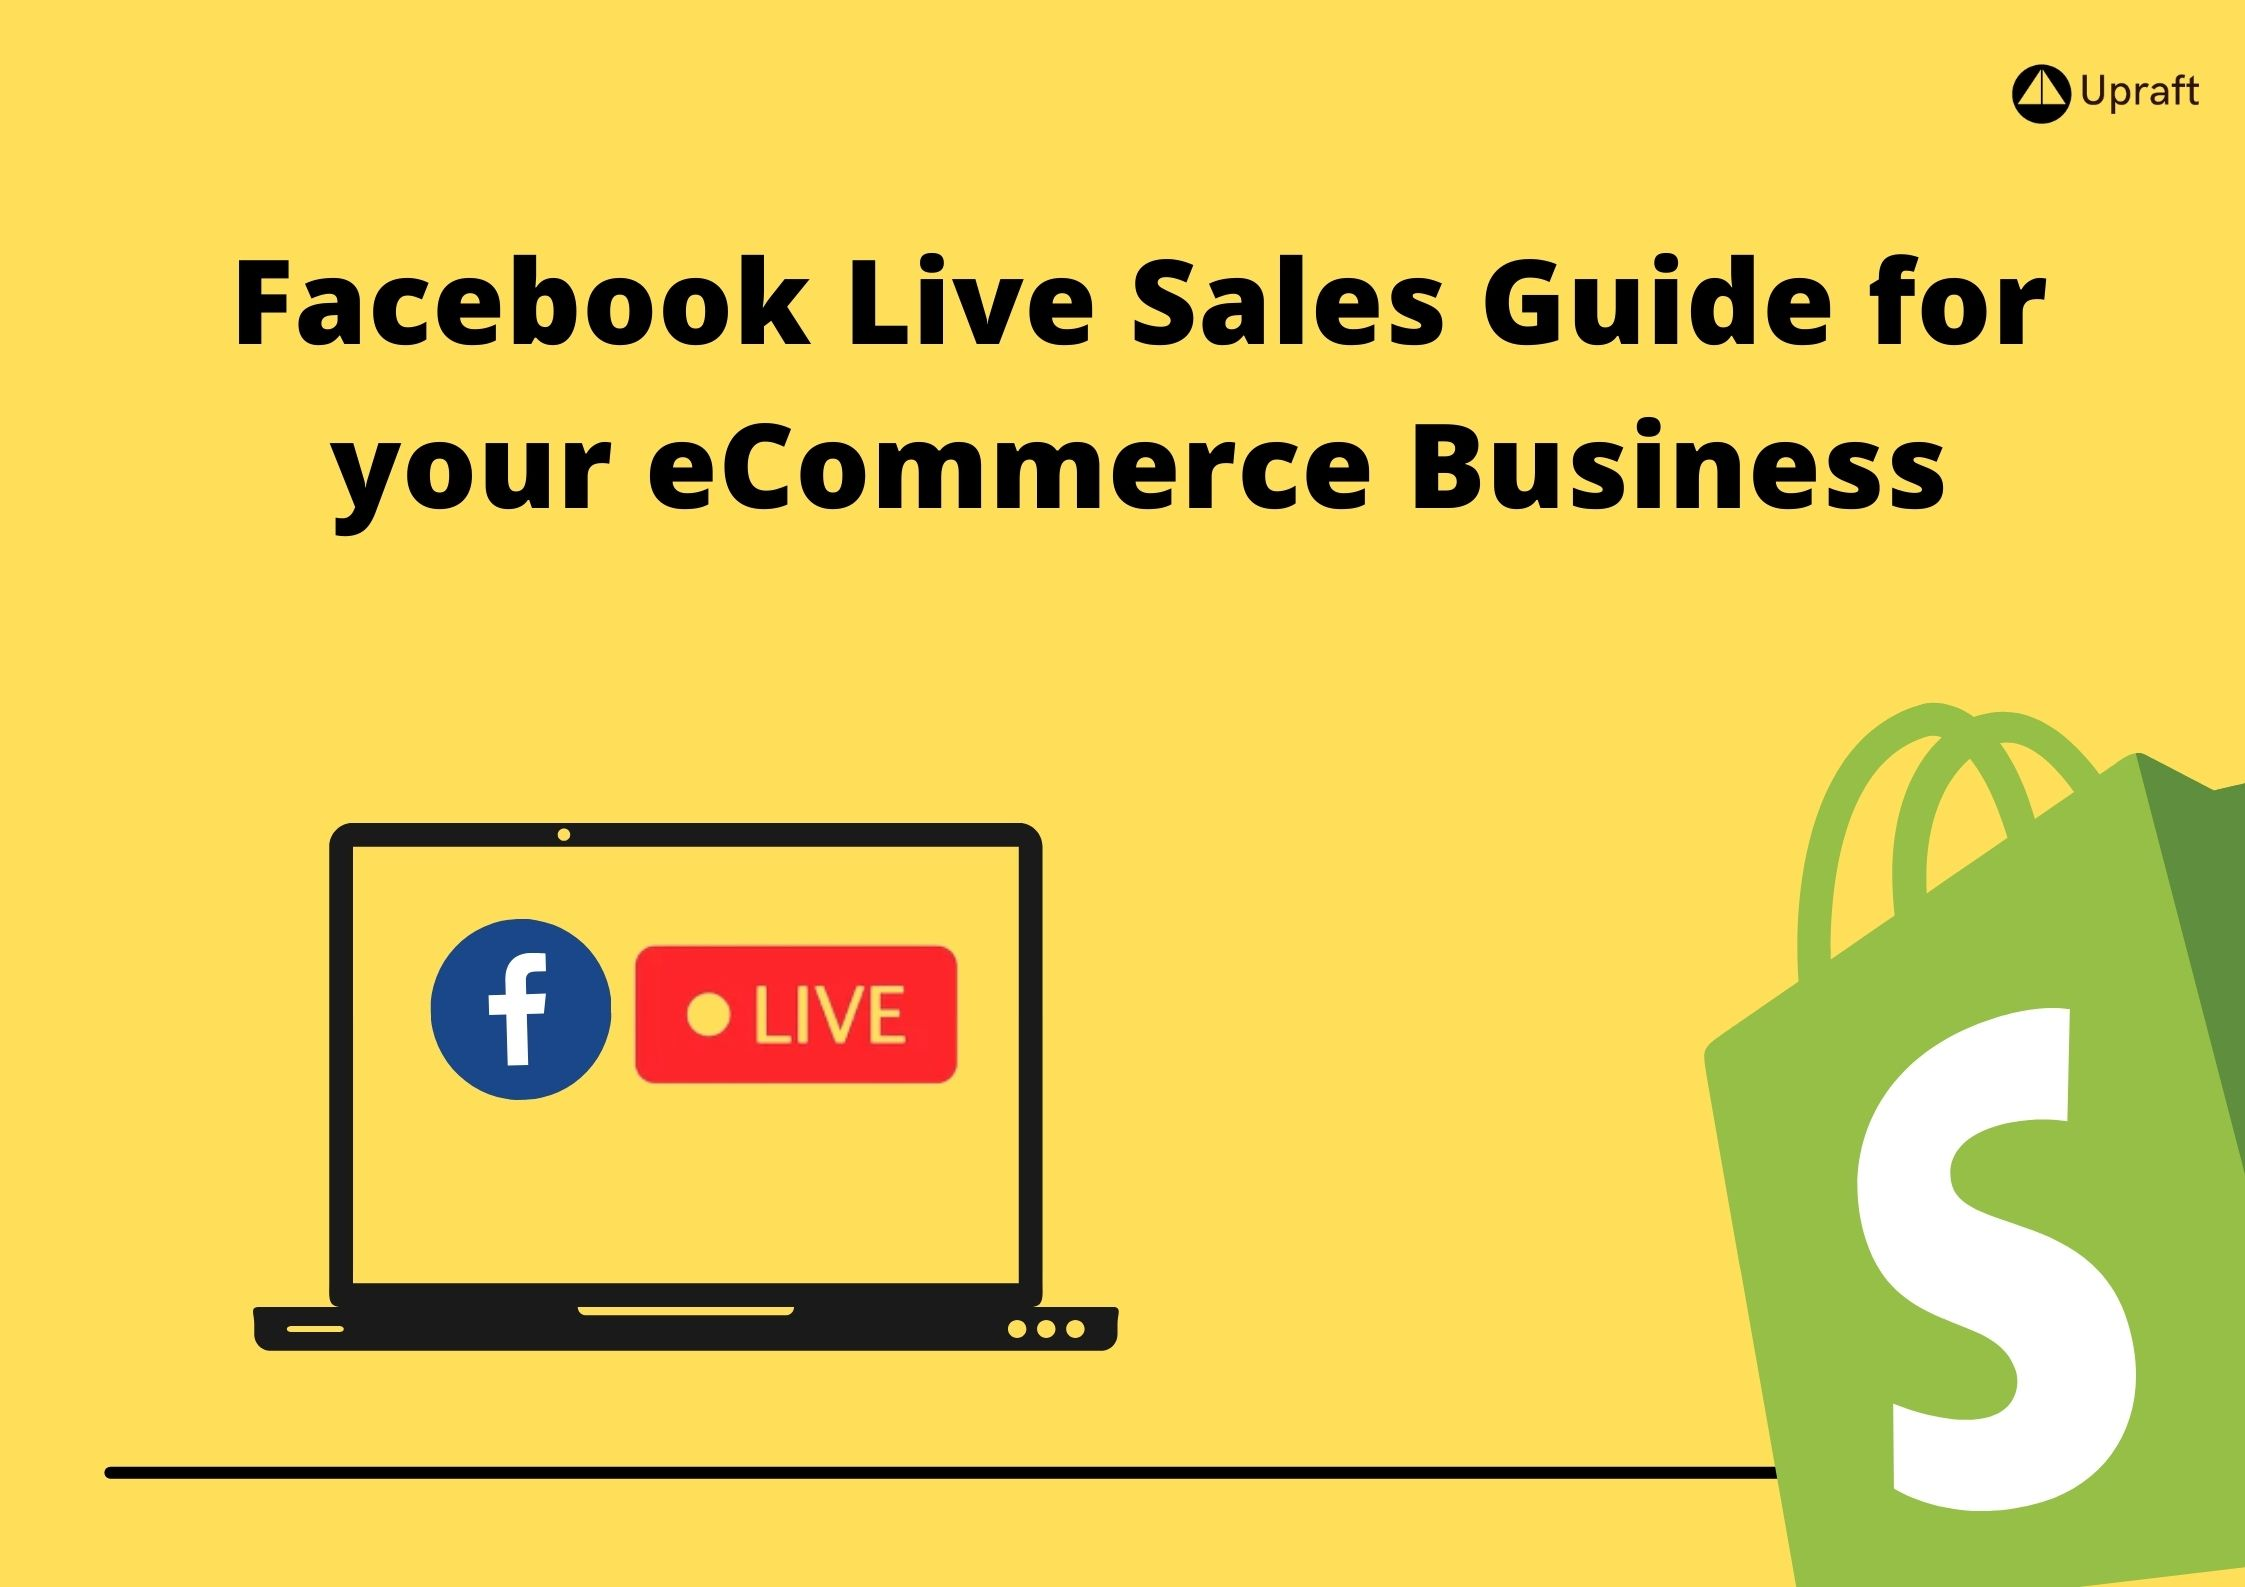 With the growing importance of social commerce, we cover the basics of Social Commerce, Facebook Live Sales, how to make the most of it. Points to keep in mind while hosting a live sale, recommended apps, best platforms for Facebook Live sale, and case studies.